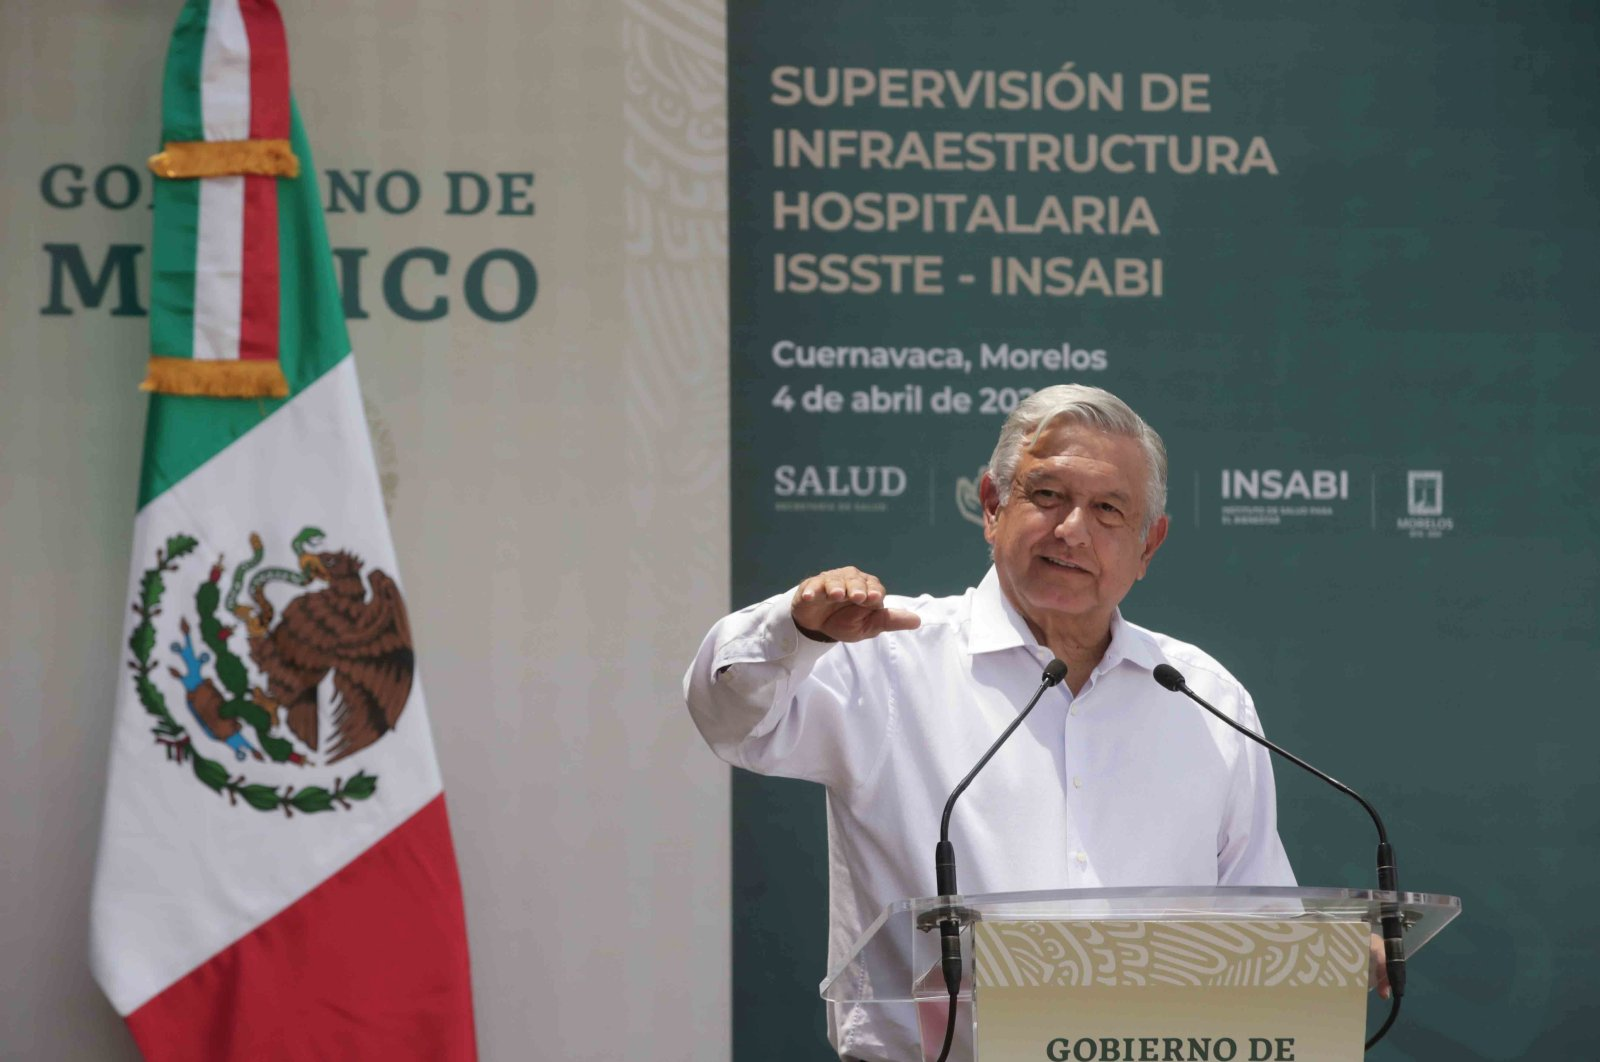 Mexico's President Andres Manuel Lopez Obrador talks to the media after touring a family clinic in Cuernavaca, Morelos, Mexico, Saturday, April 4, 2020. (Reuters Photo)